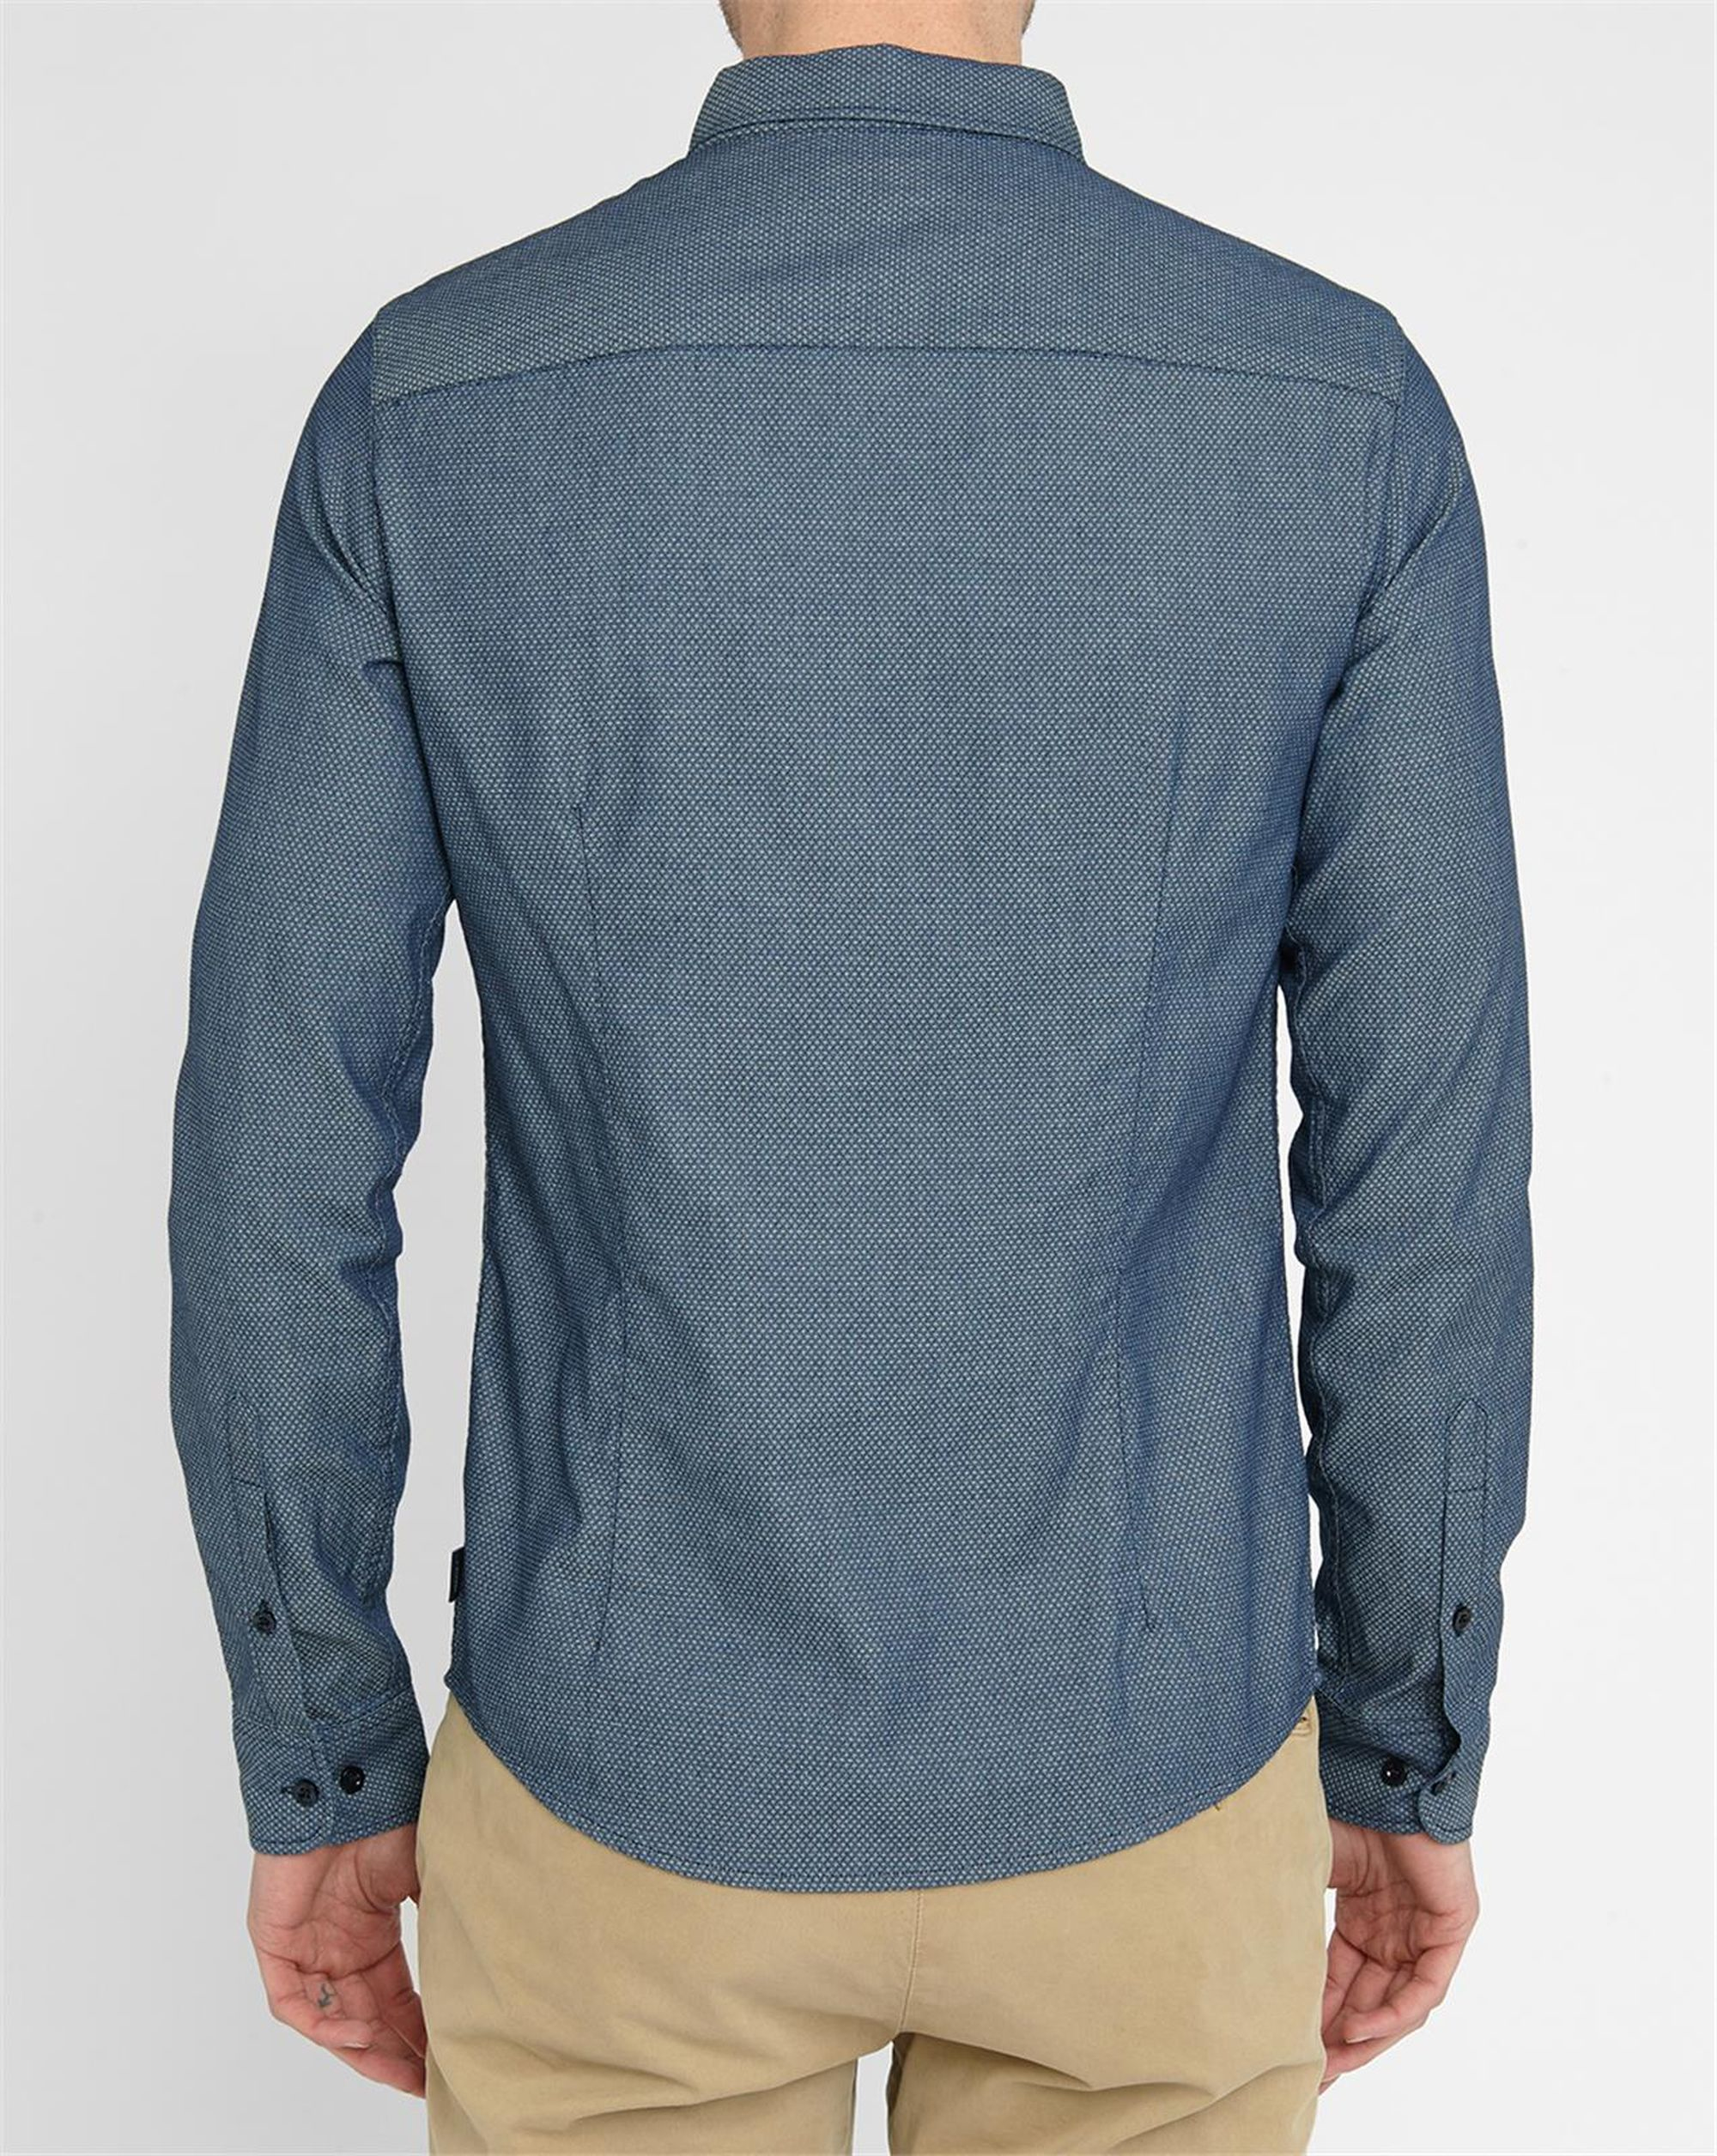 Armani jeans chambray micro pattern small collar shirt in for Small collar dress shirt